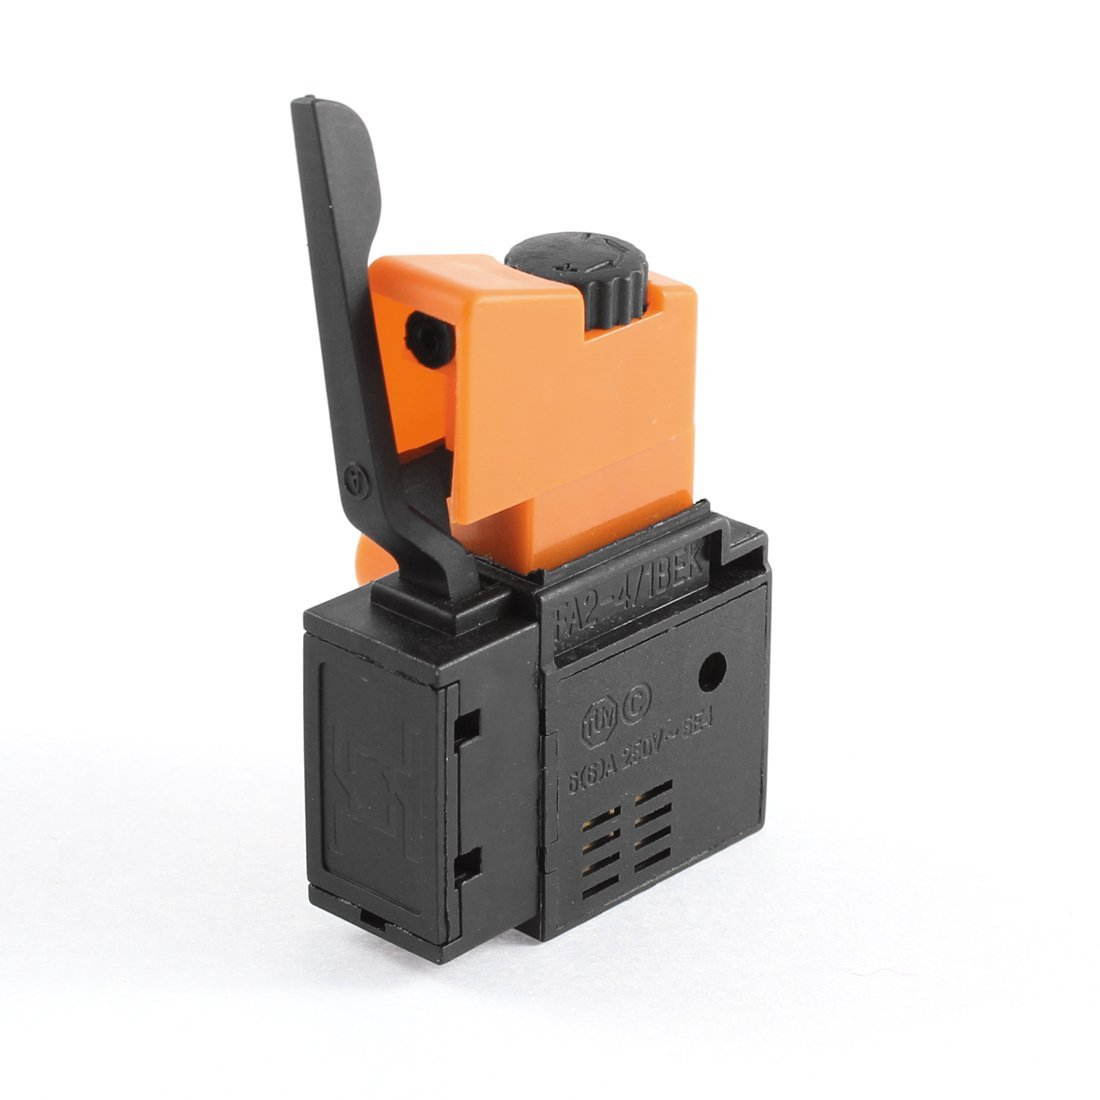 1PC AC 250V/4A FA2-4/1BEK Adjustable Speed Switch For Electric Drill Trigger Switches High Quality